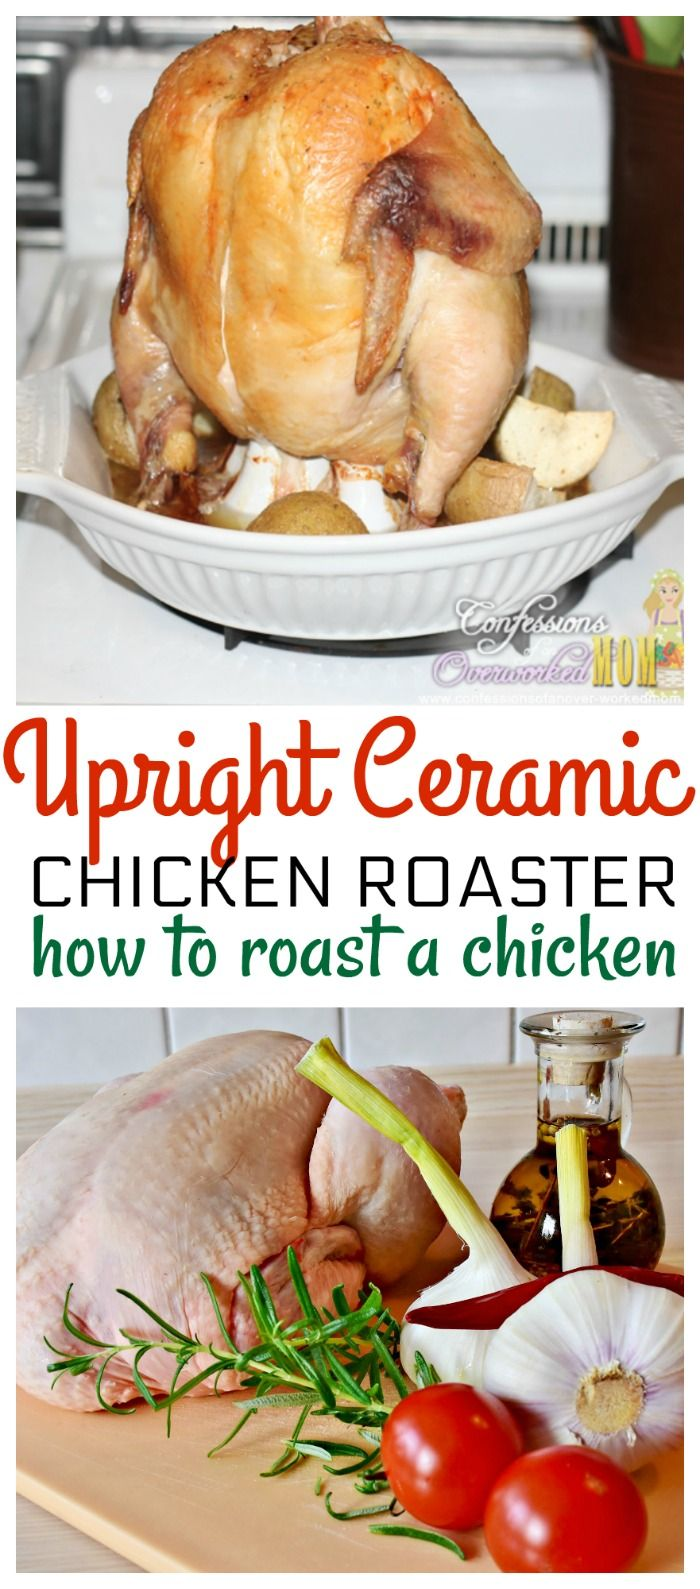 Upright Chicken Roaster from Reco for the Juciest Chicken Ever via @ellenblogs